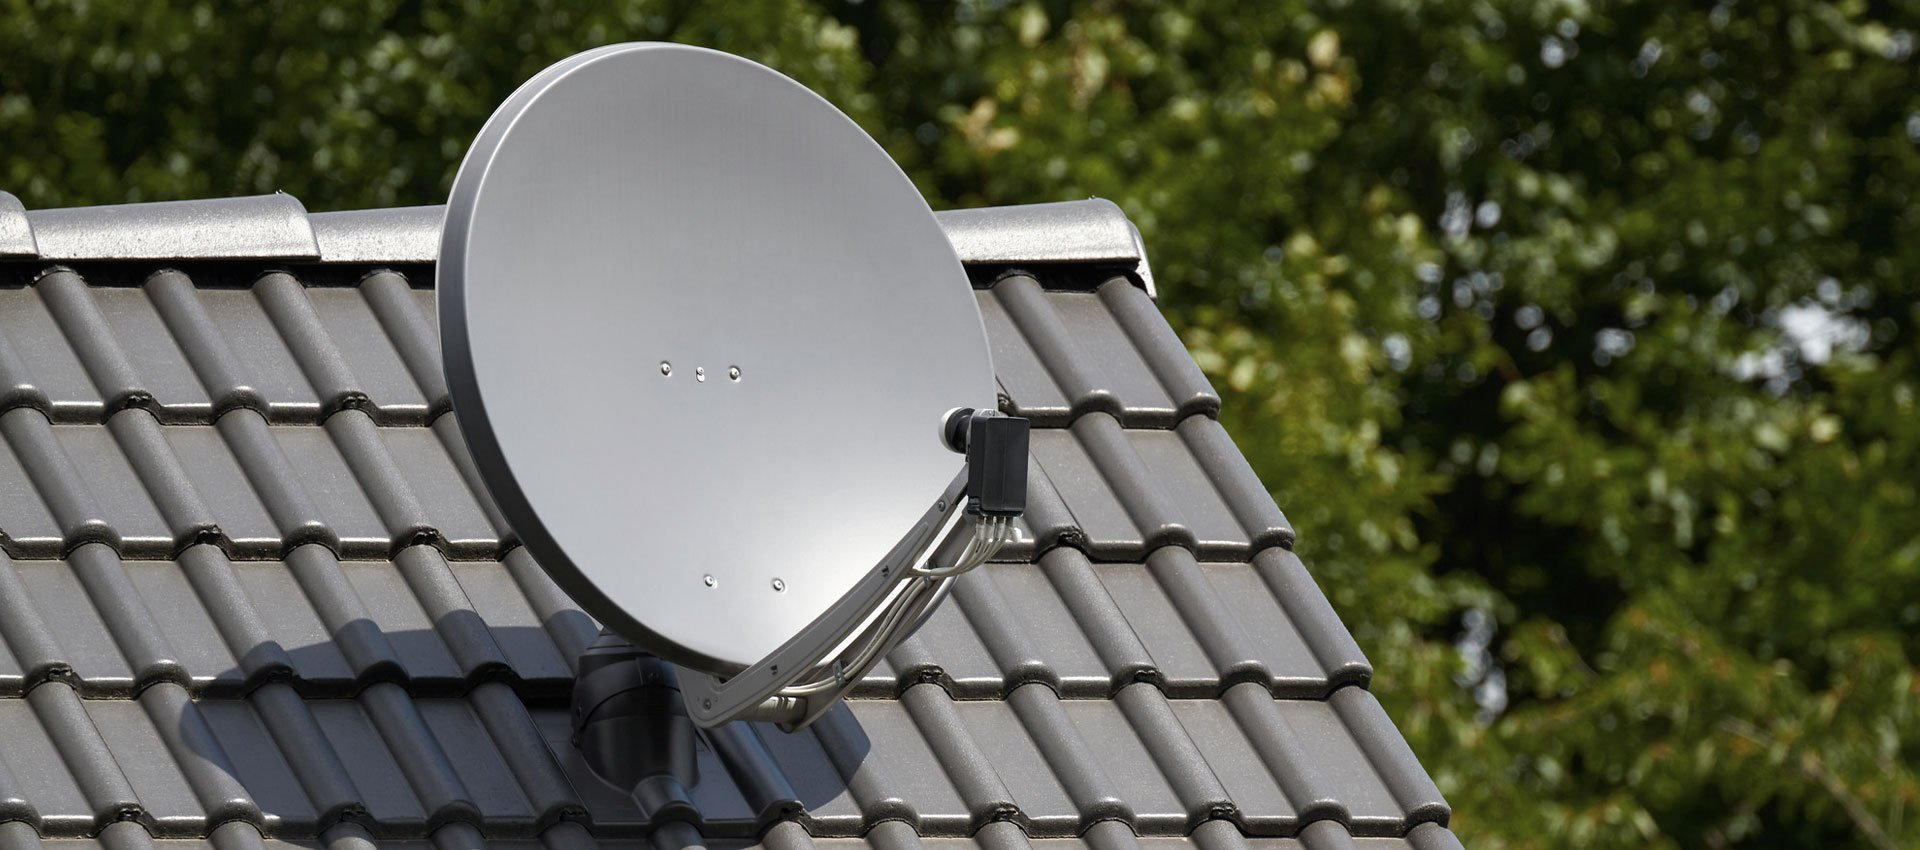 Typical 65cm dish used for Sky TV